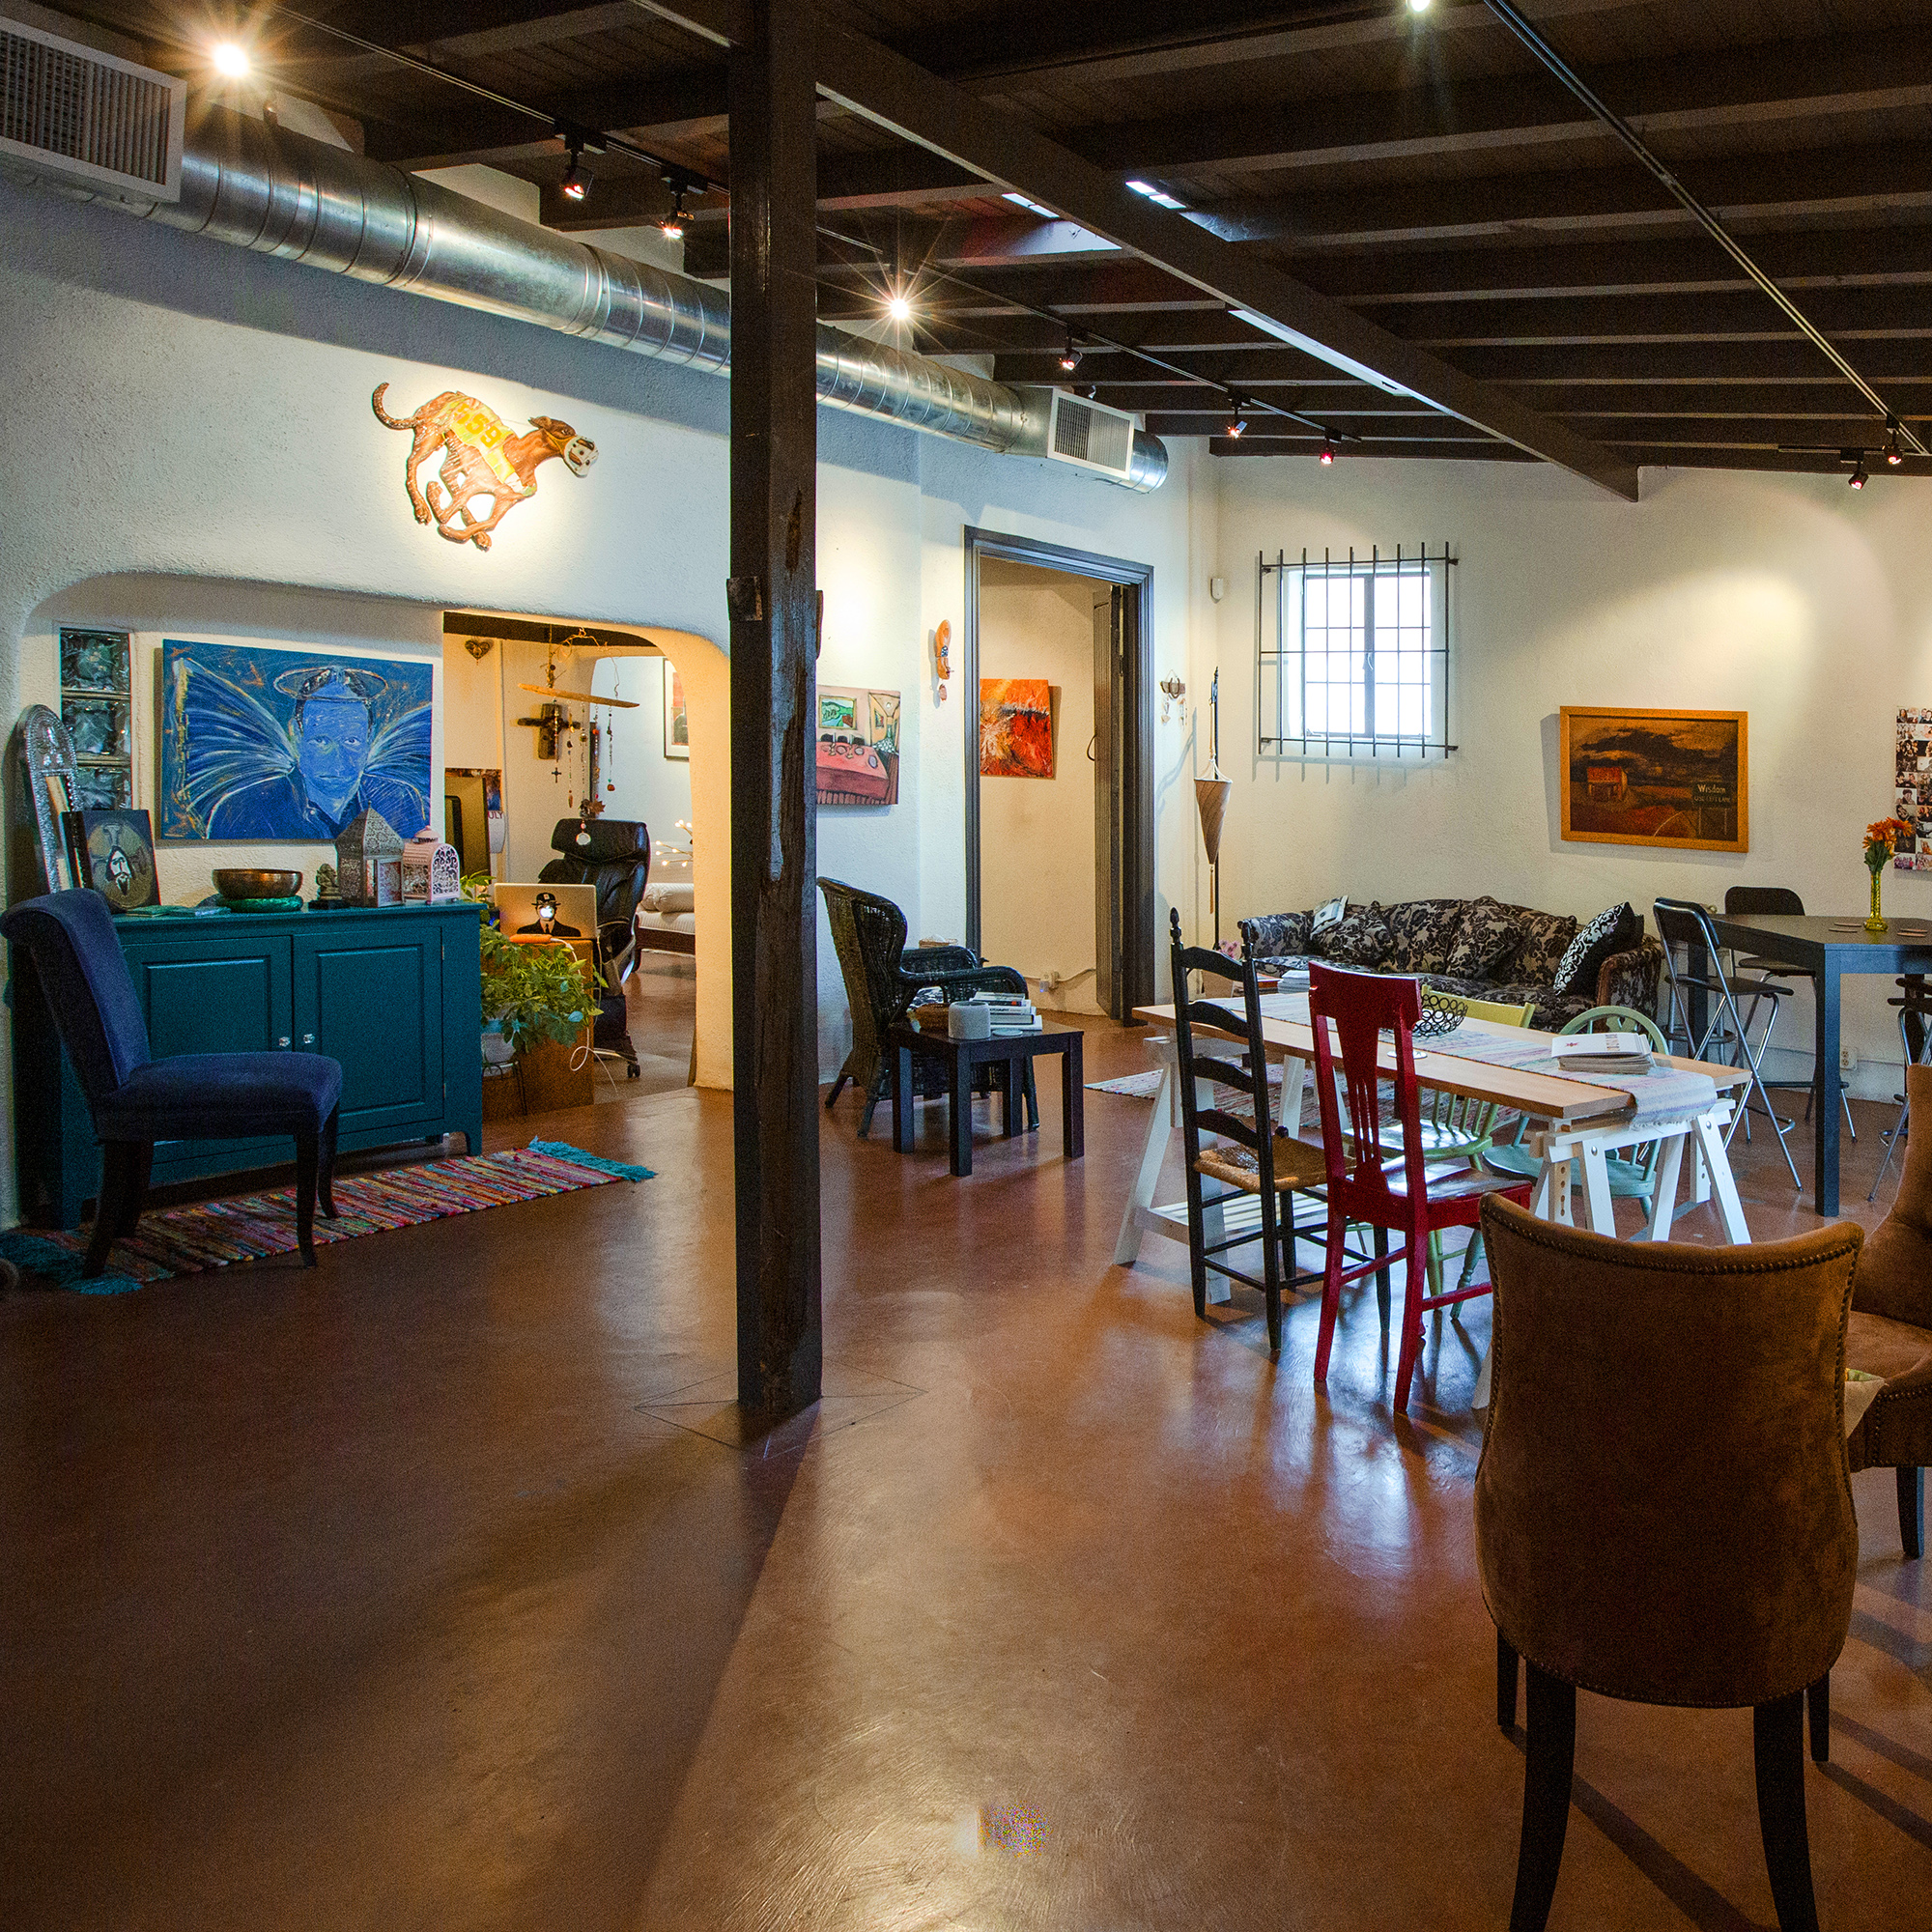 Cozy Client Area - We've created a comfortable hang-out space for you, your models and your clients. There are lots of chairs and tables for setting up your laptop, meeting with your crew or eating lunch. Wifi is robust and electrical outlets are plenty.